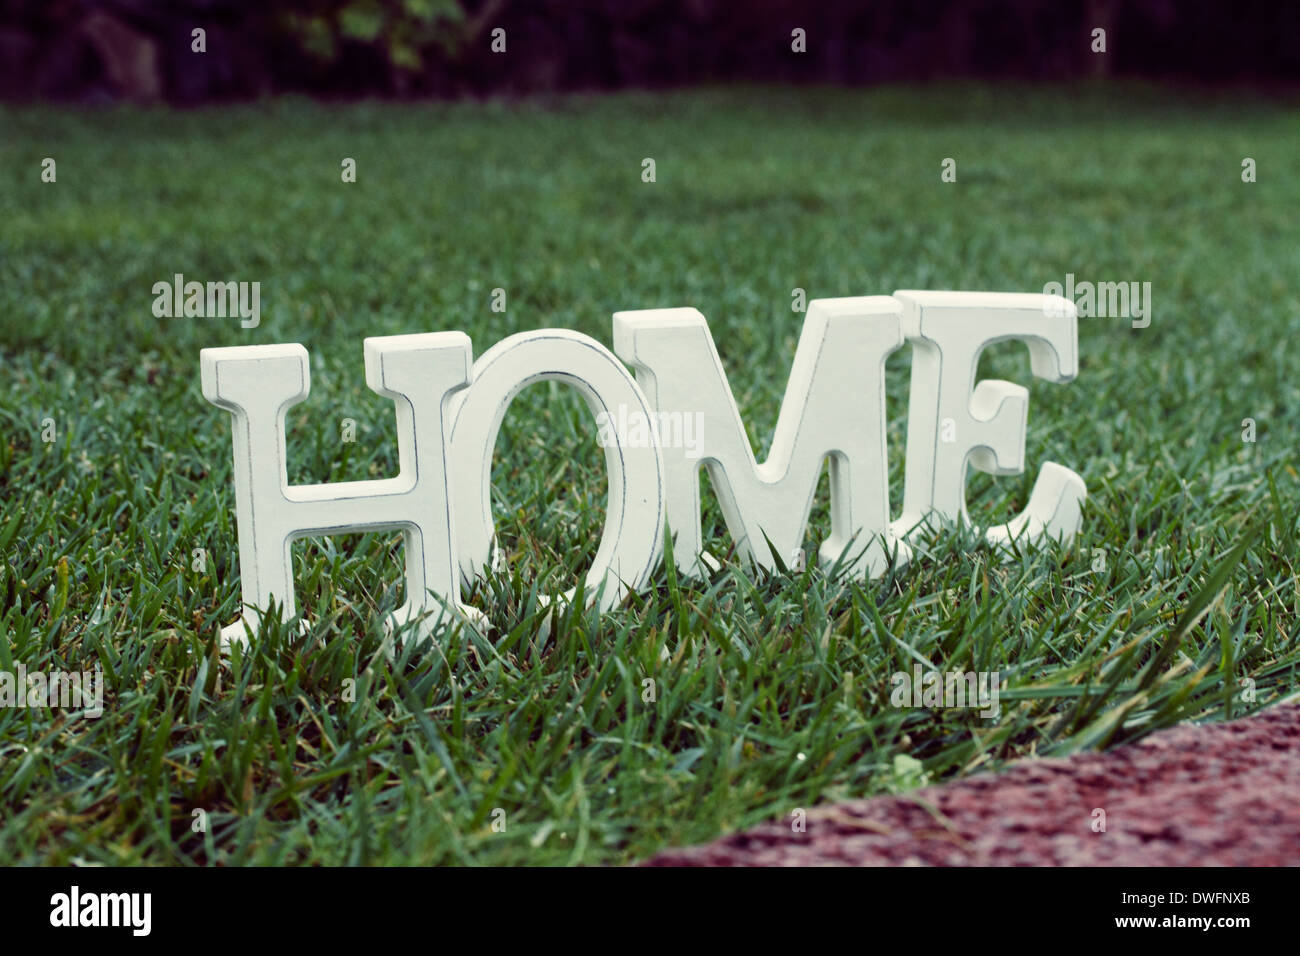 Home sign on grass - Stock Image